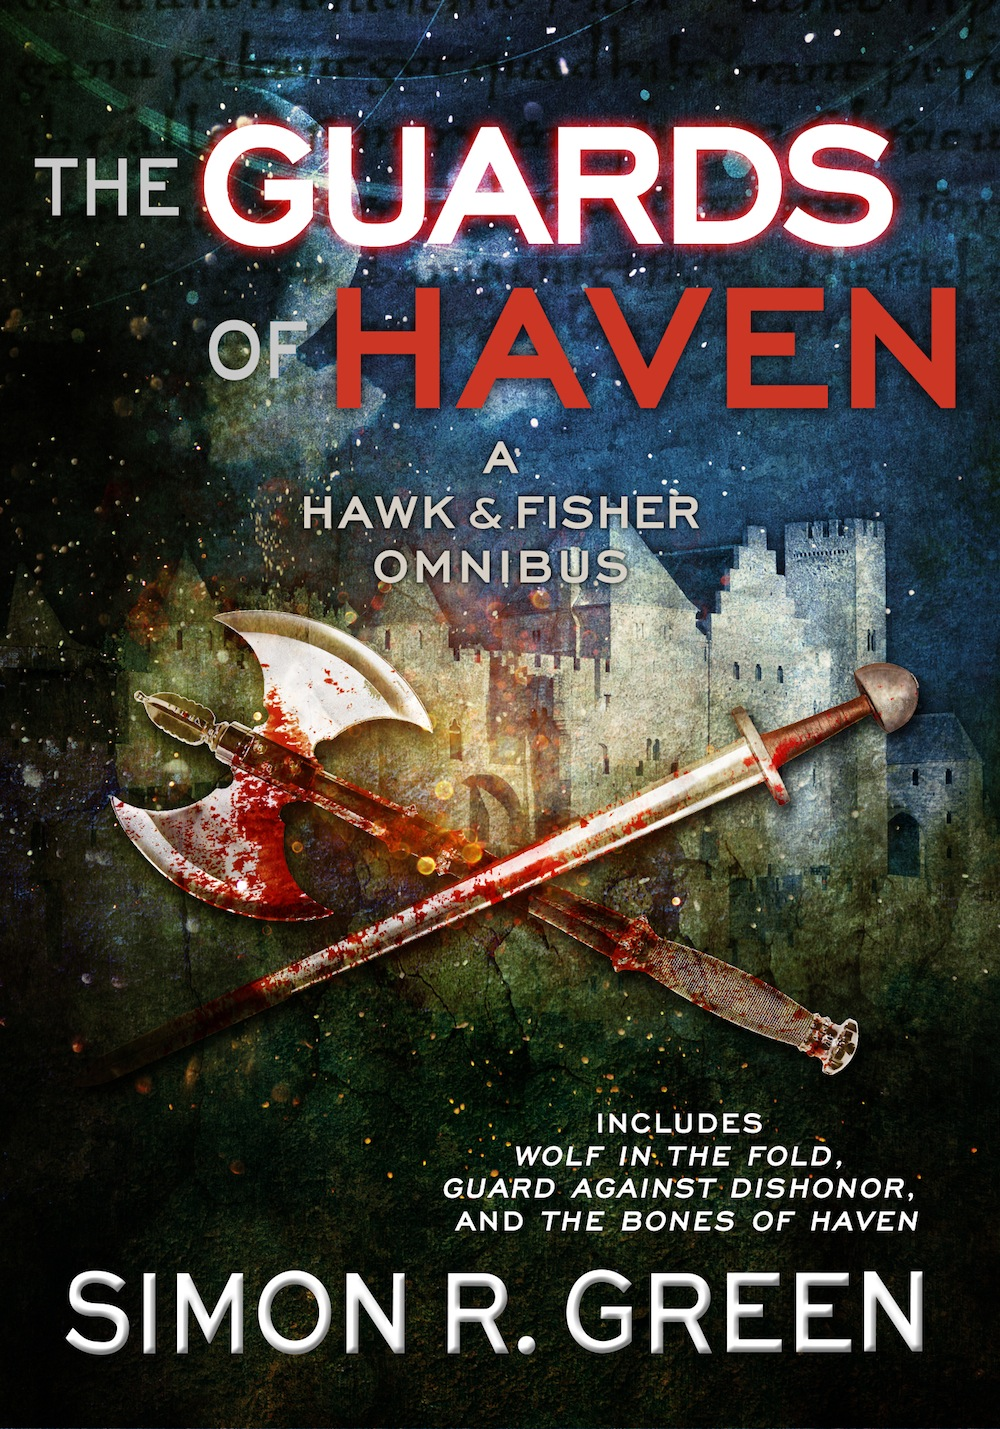 Guards of Haven by Simon R. Green